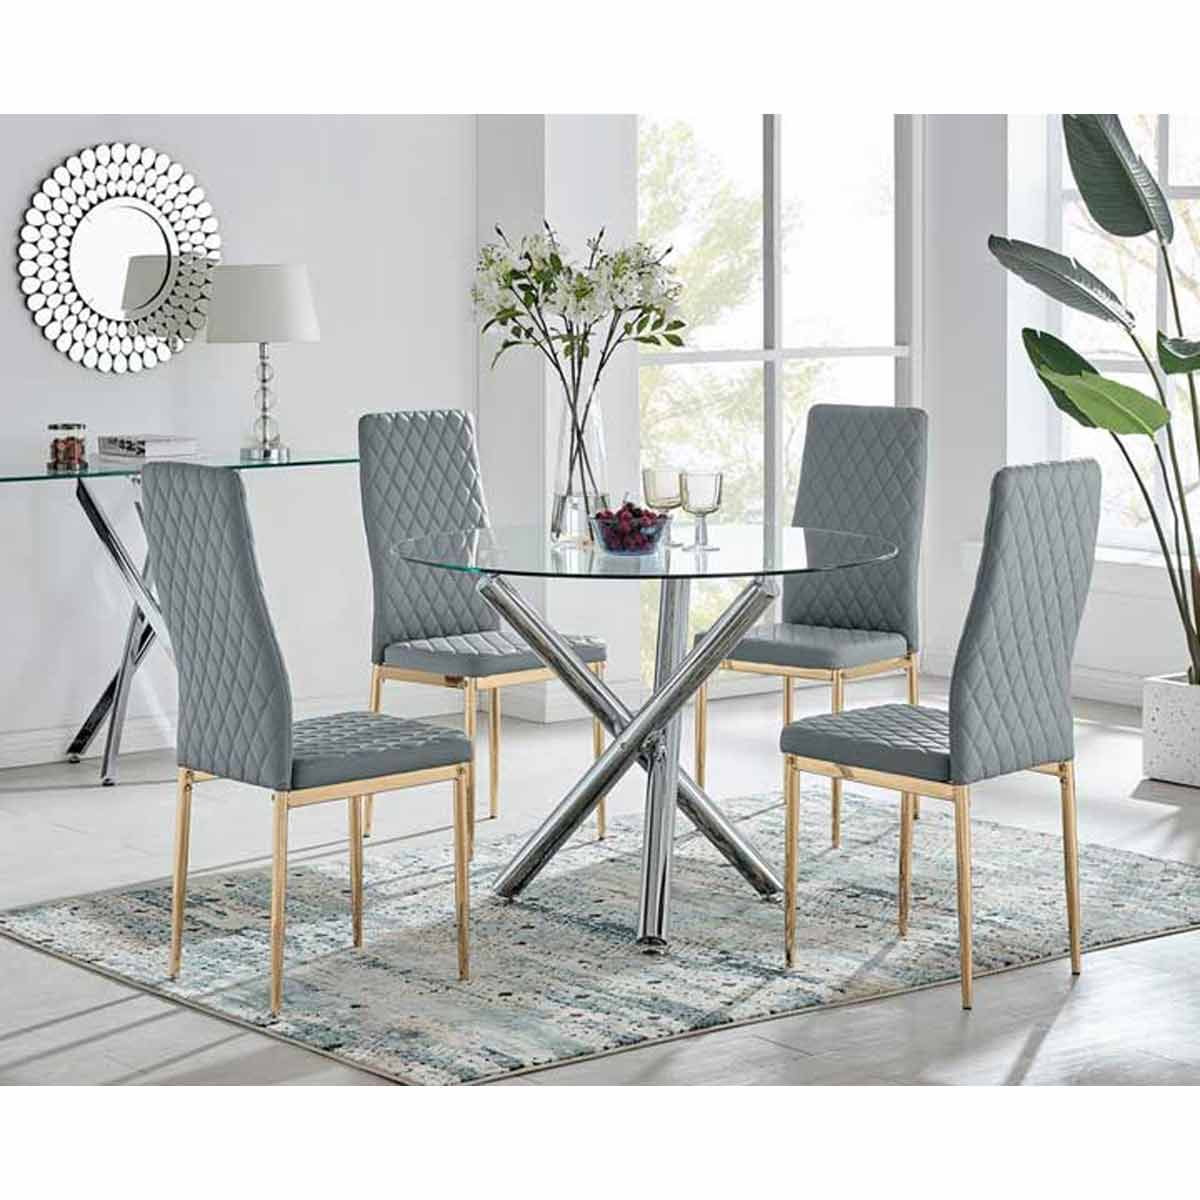 Furniture Box Selina Round Dining Table and 4 Grey Gold Leg Milan Chairs